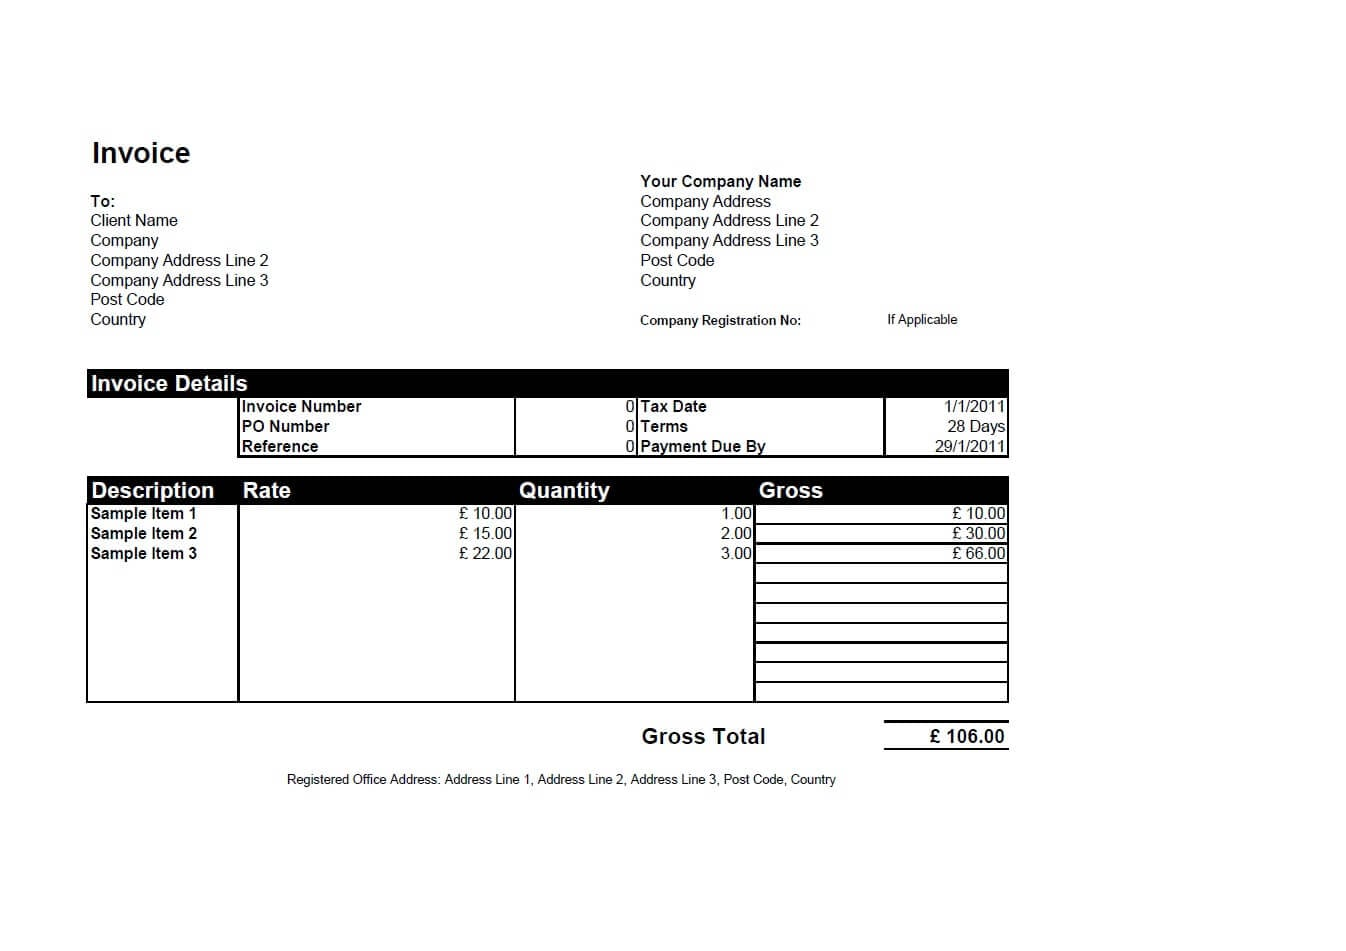 QuickBooks Edit Invoice Template Quickbooks Invoice Template Default Quickbooks Invoice Sample Quickbooks Invoice Template Location Edit Invoice Template Quickbooks Proforma Invoice Template Quickbooks Basic Invoice Template Free